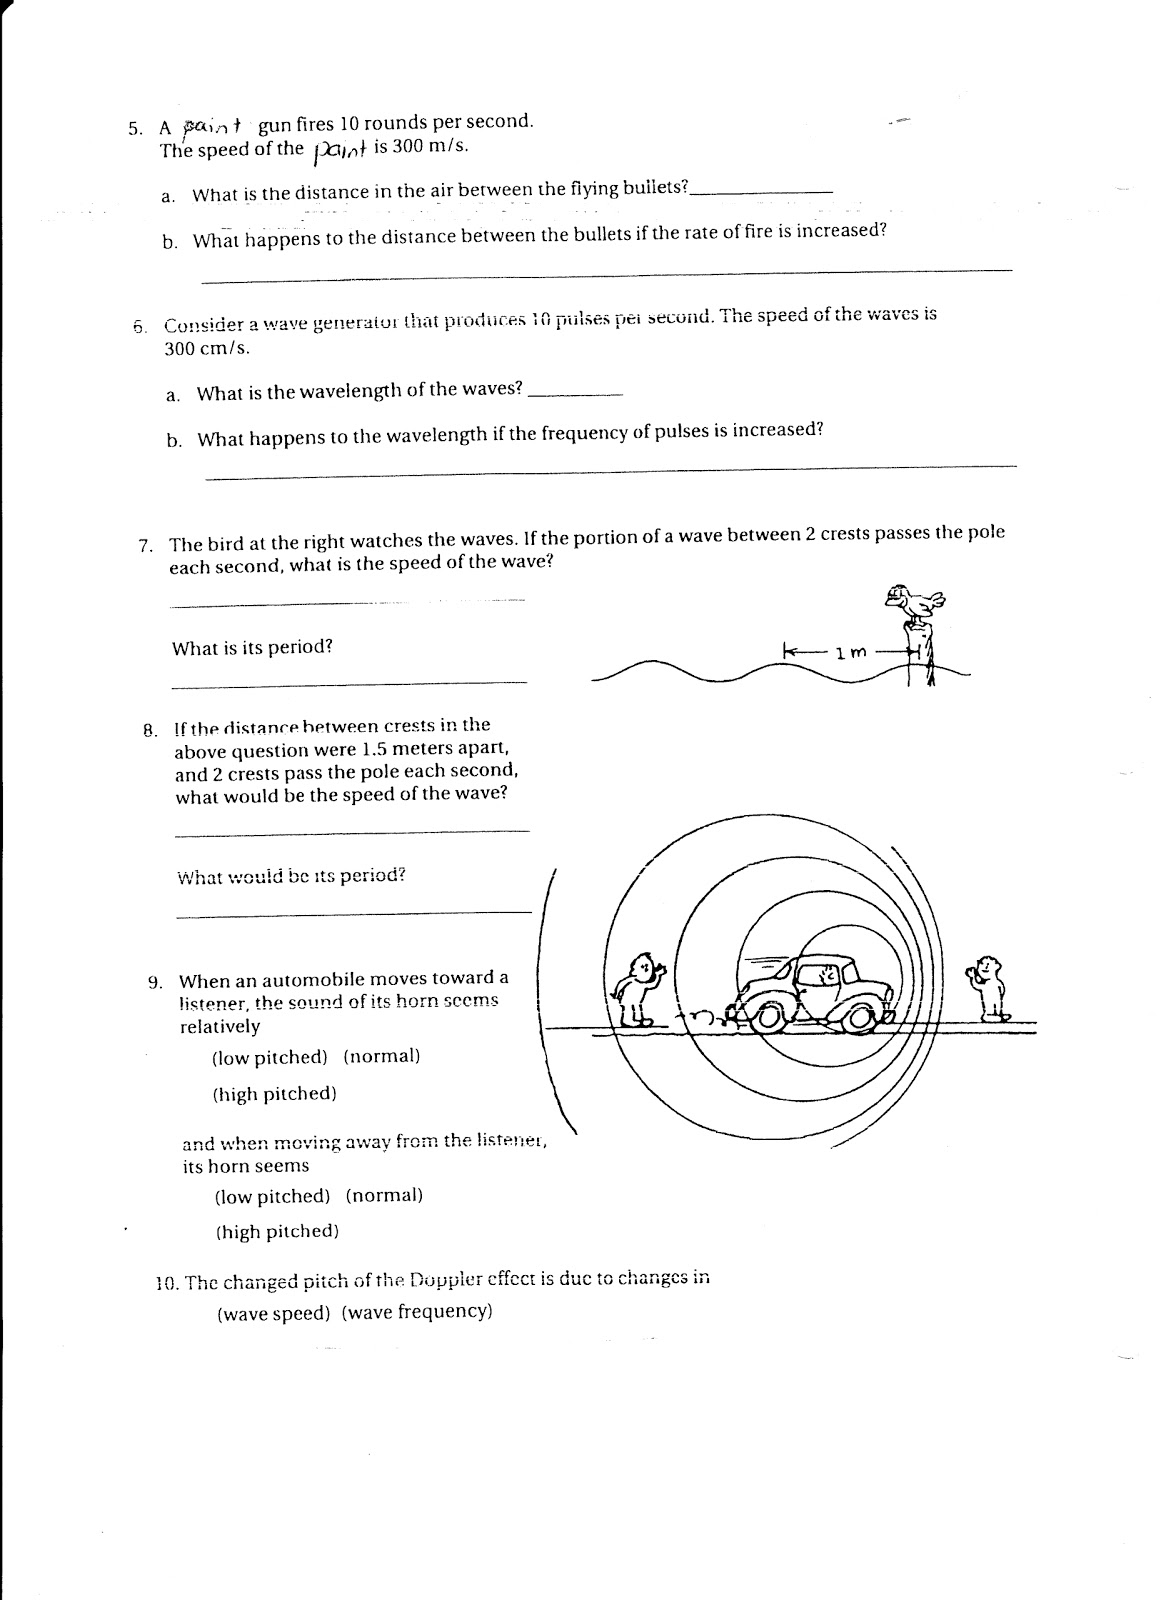 physics: Due Wed Feb 16: waves and vibrations worksheet